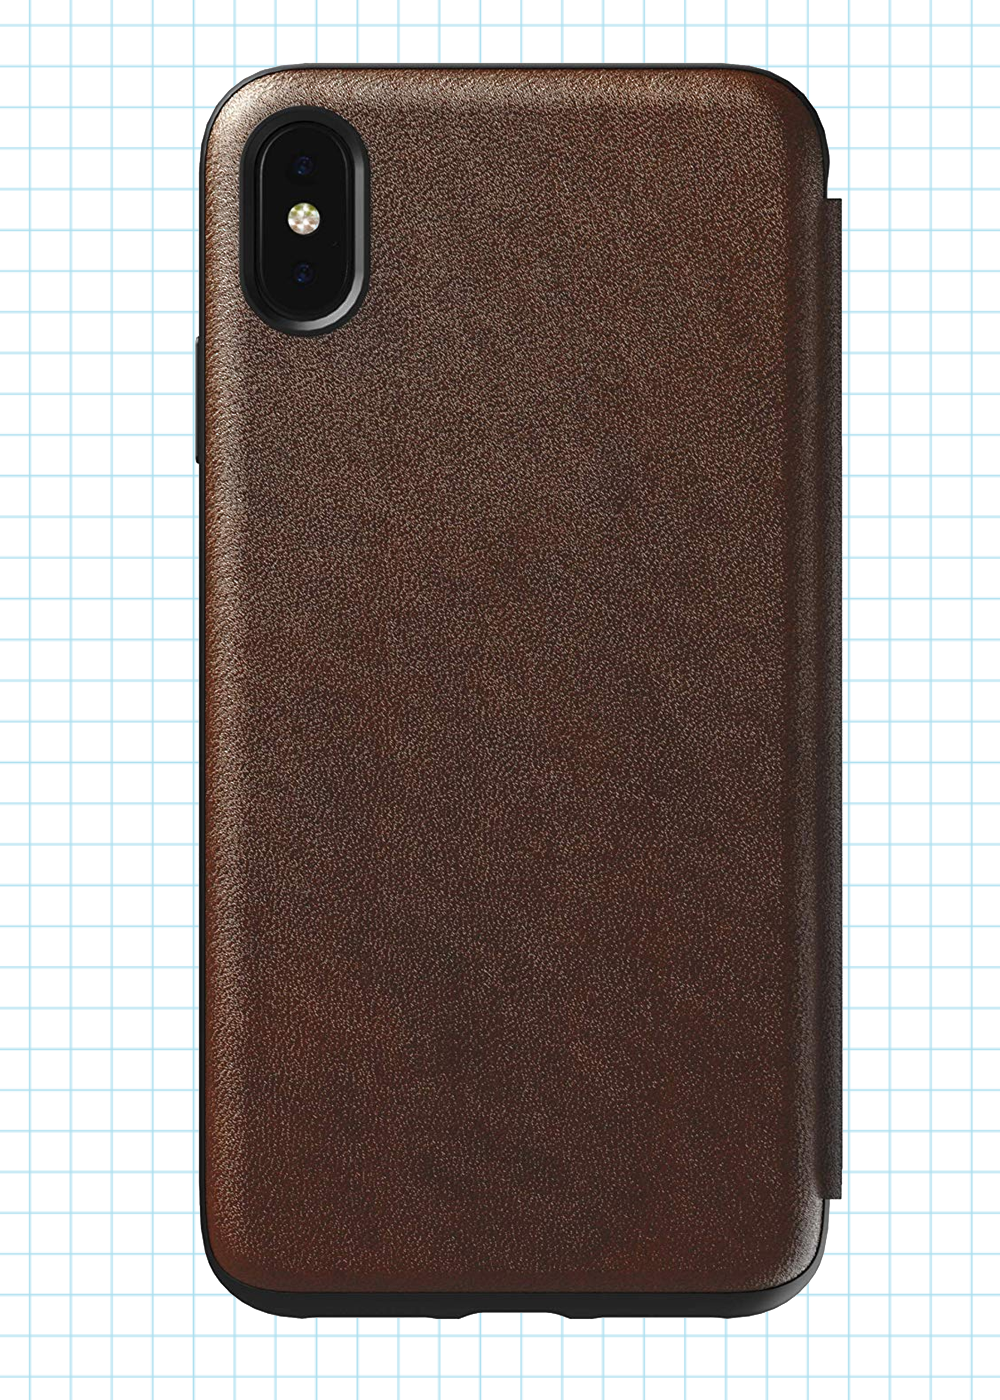 prunus phone case iphone 7 plus